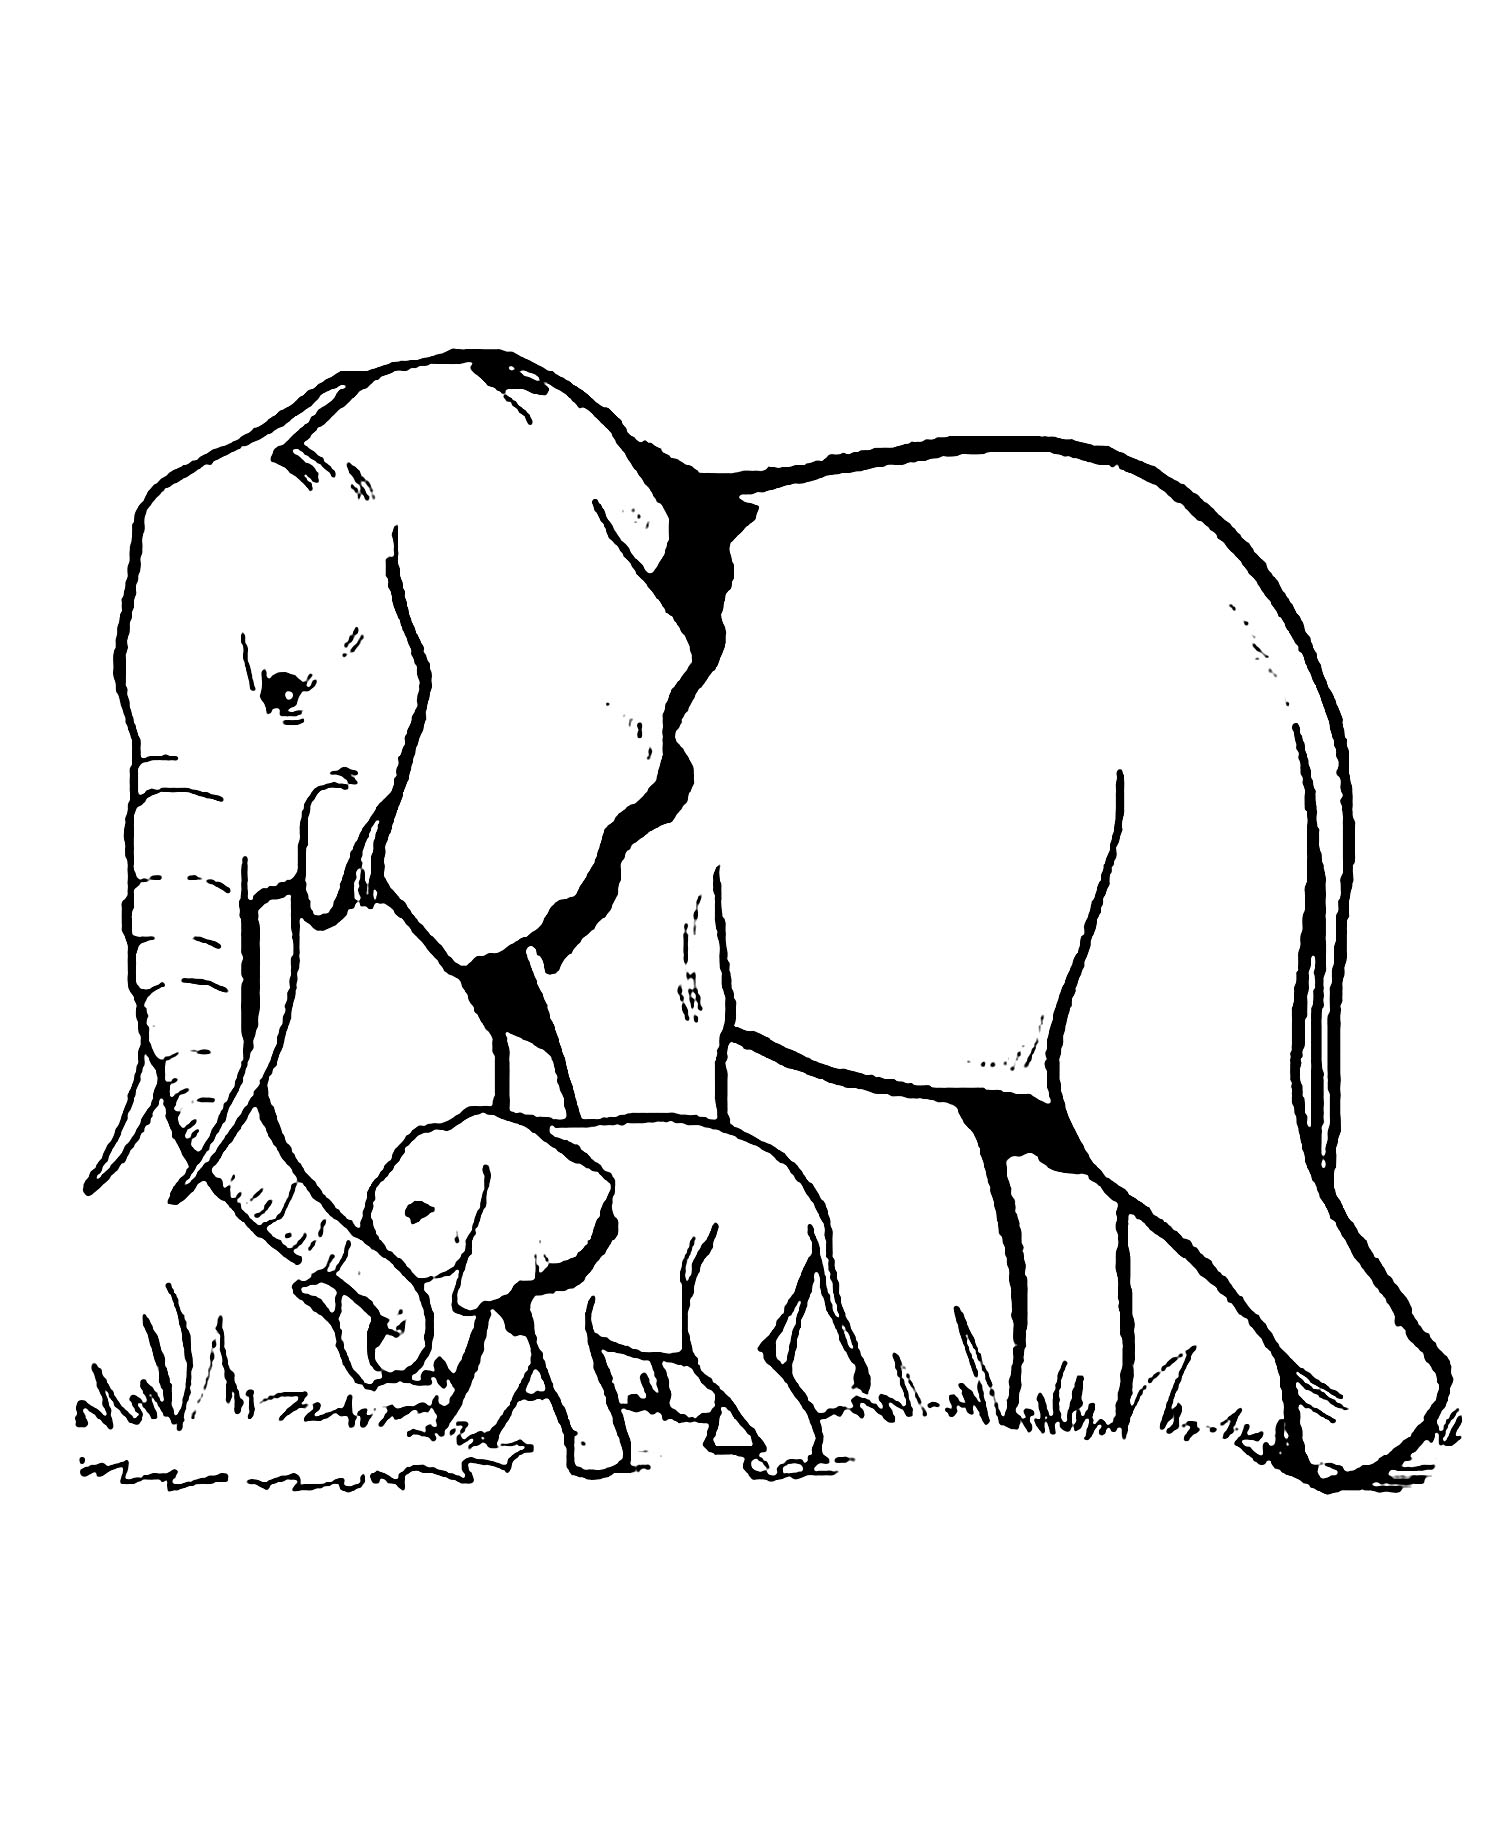 elephant coloring picture elephants free to color for children elephants kids elephant coloring picture